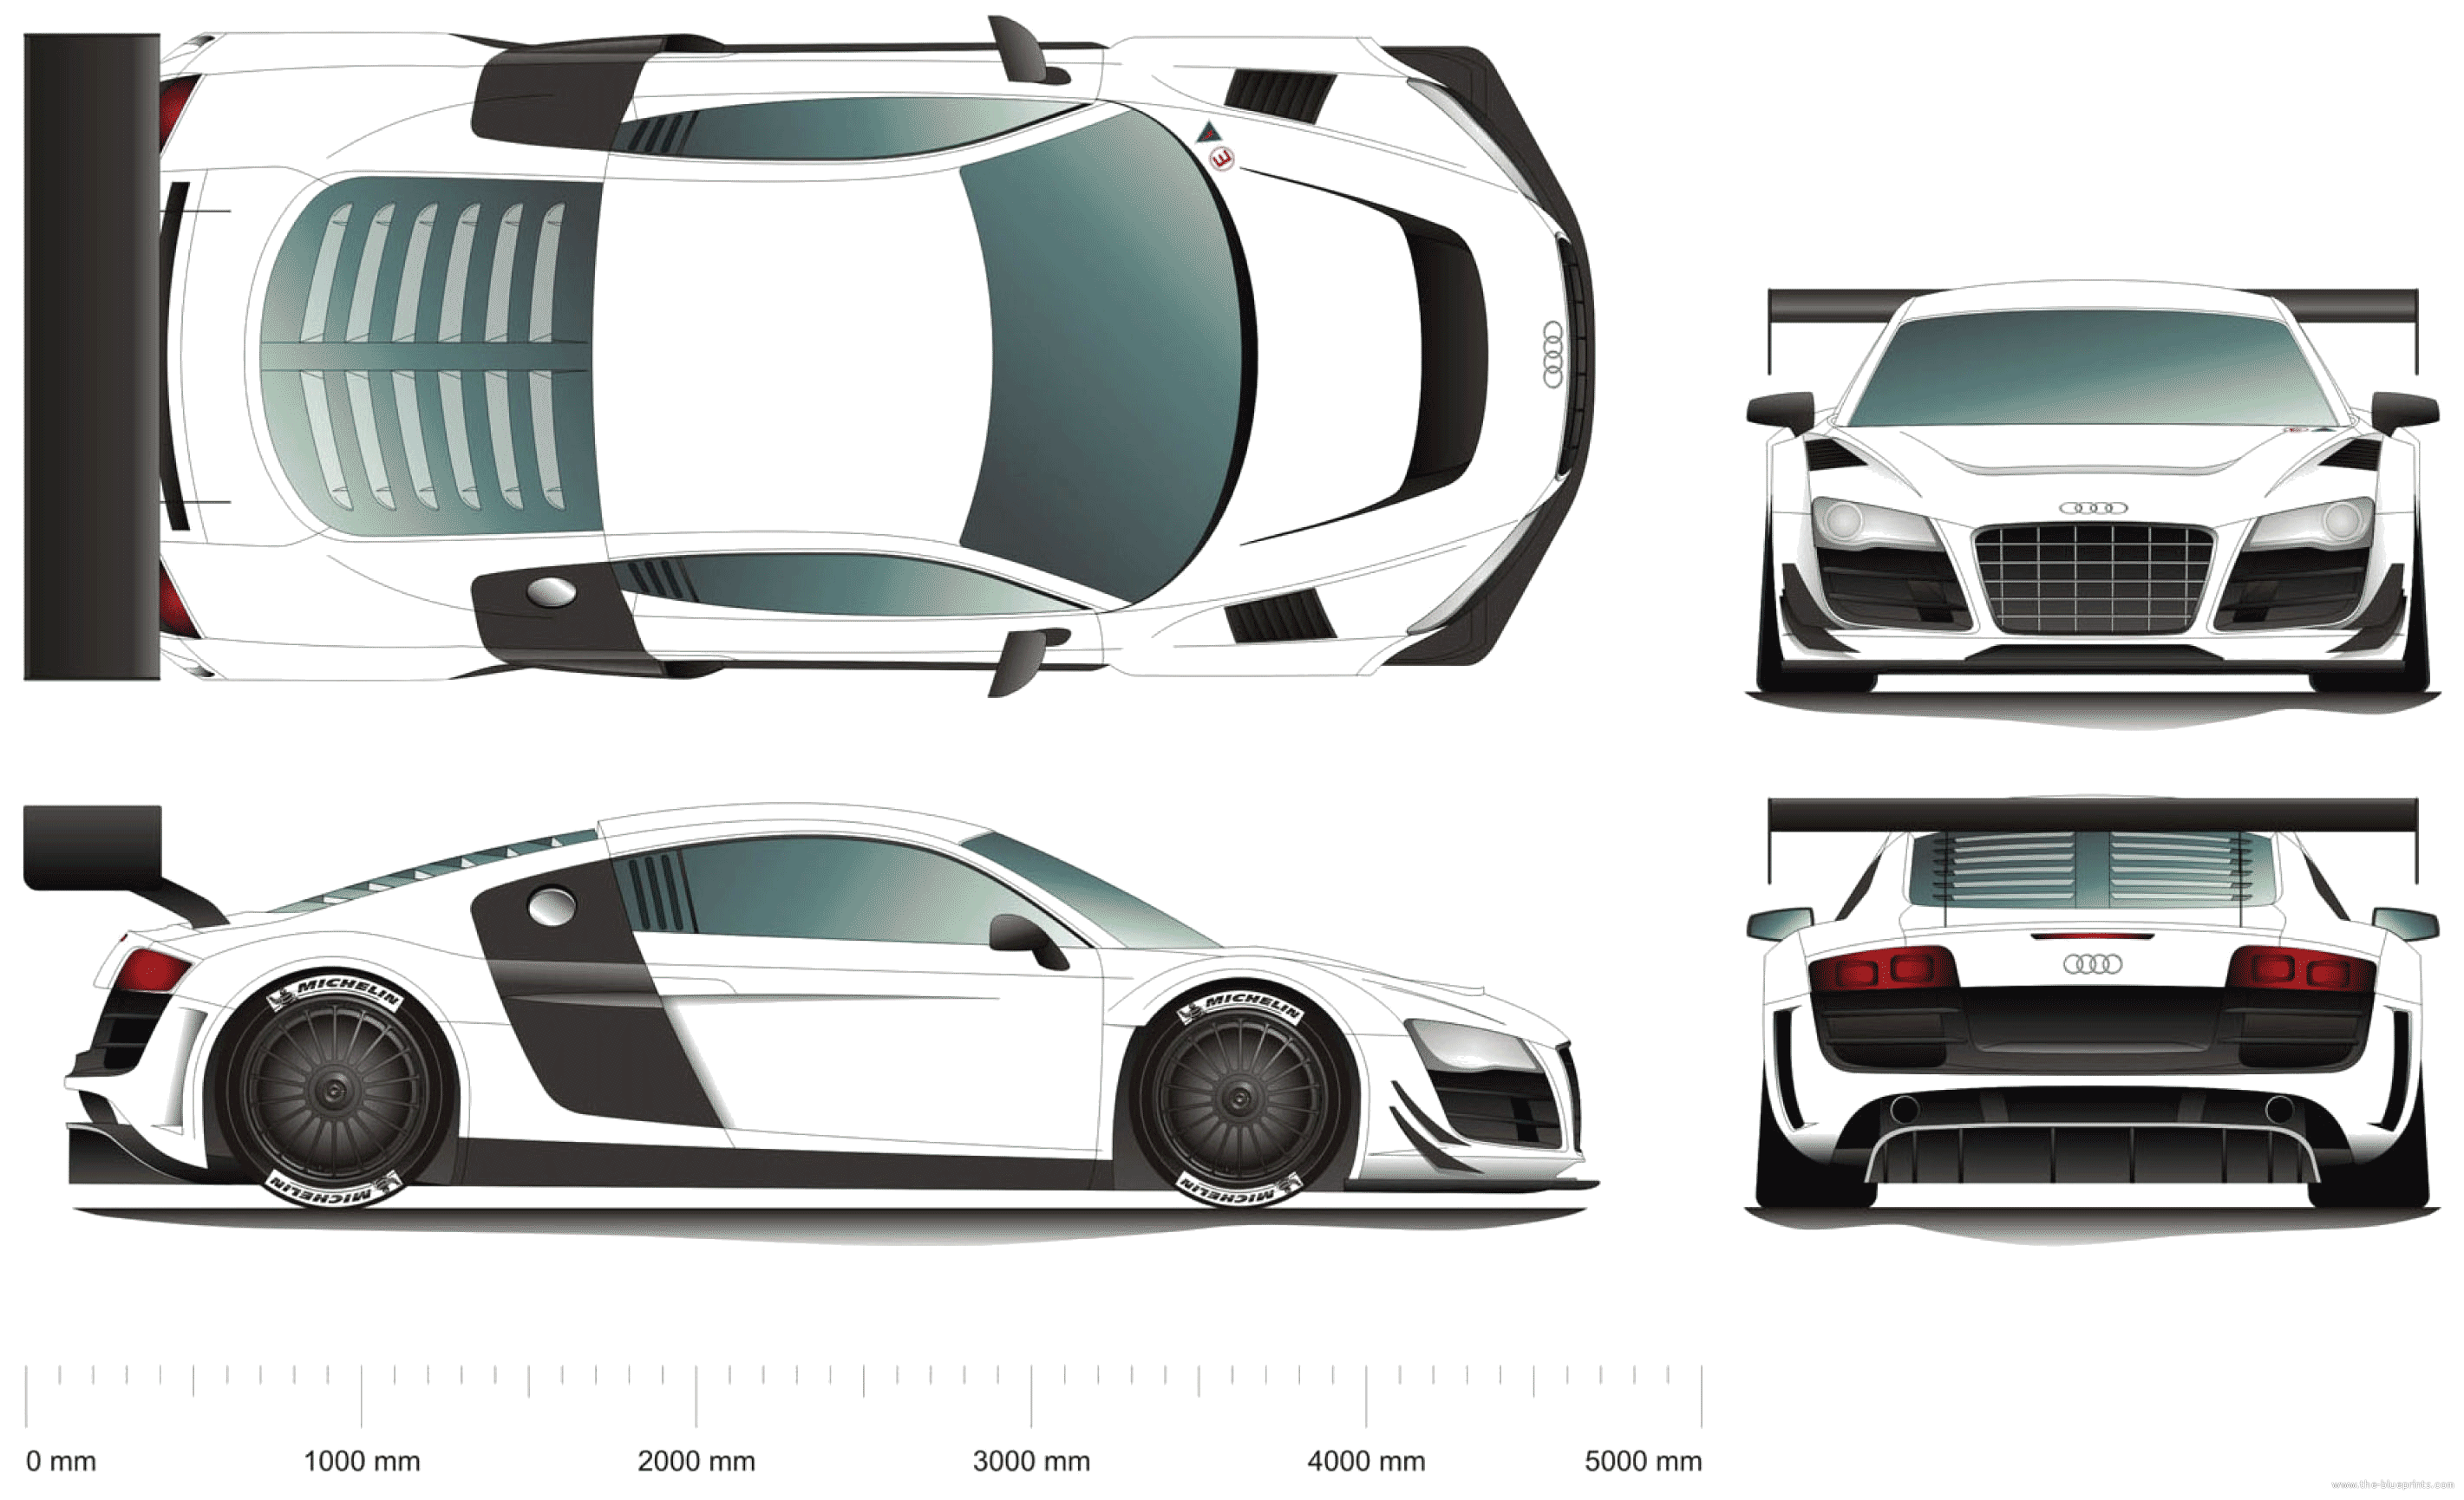 The Blueprints Com Blueprints Gt Cars Gt Audi Gt Audi R8 Alms